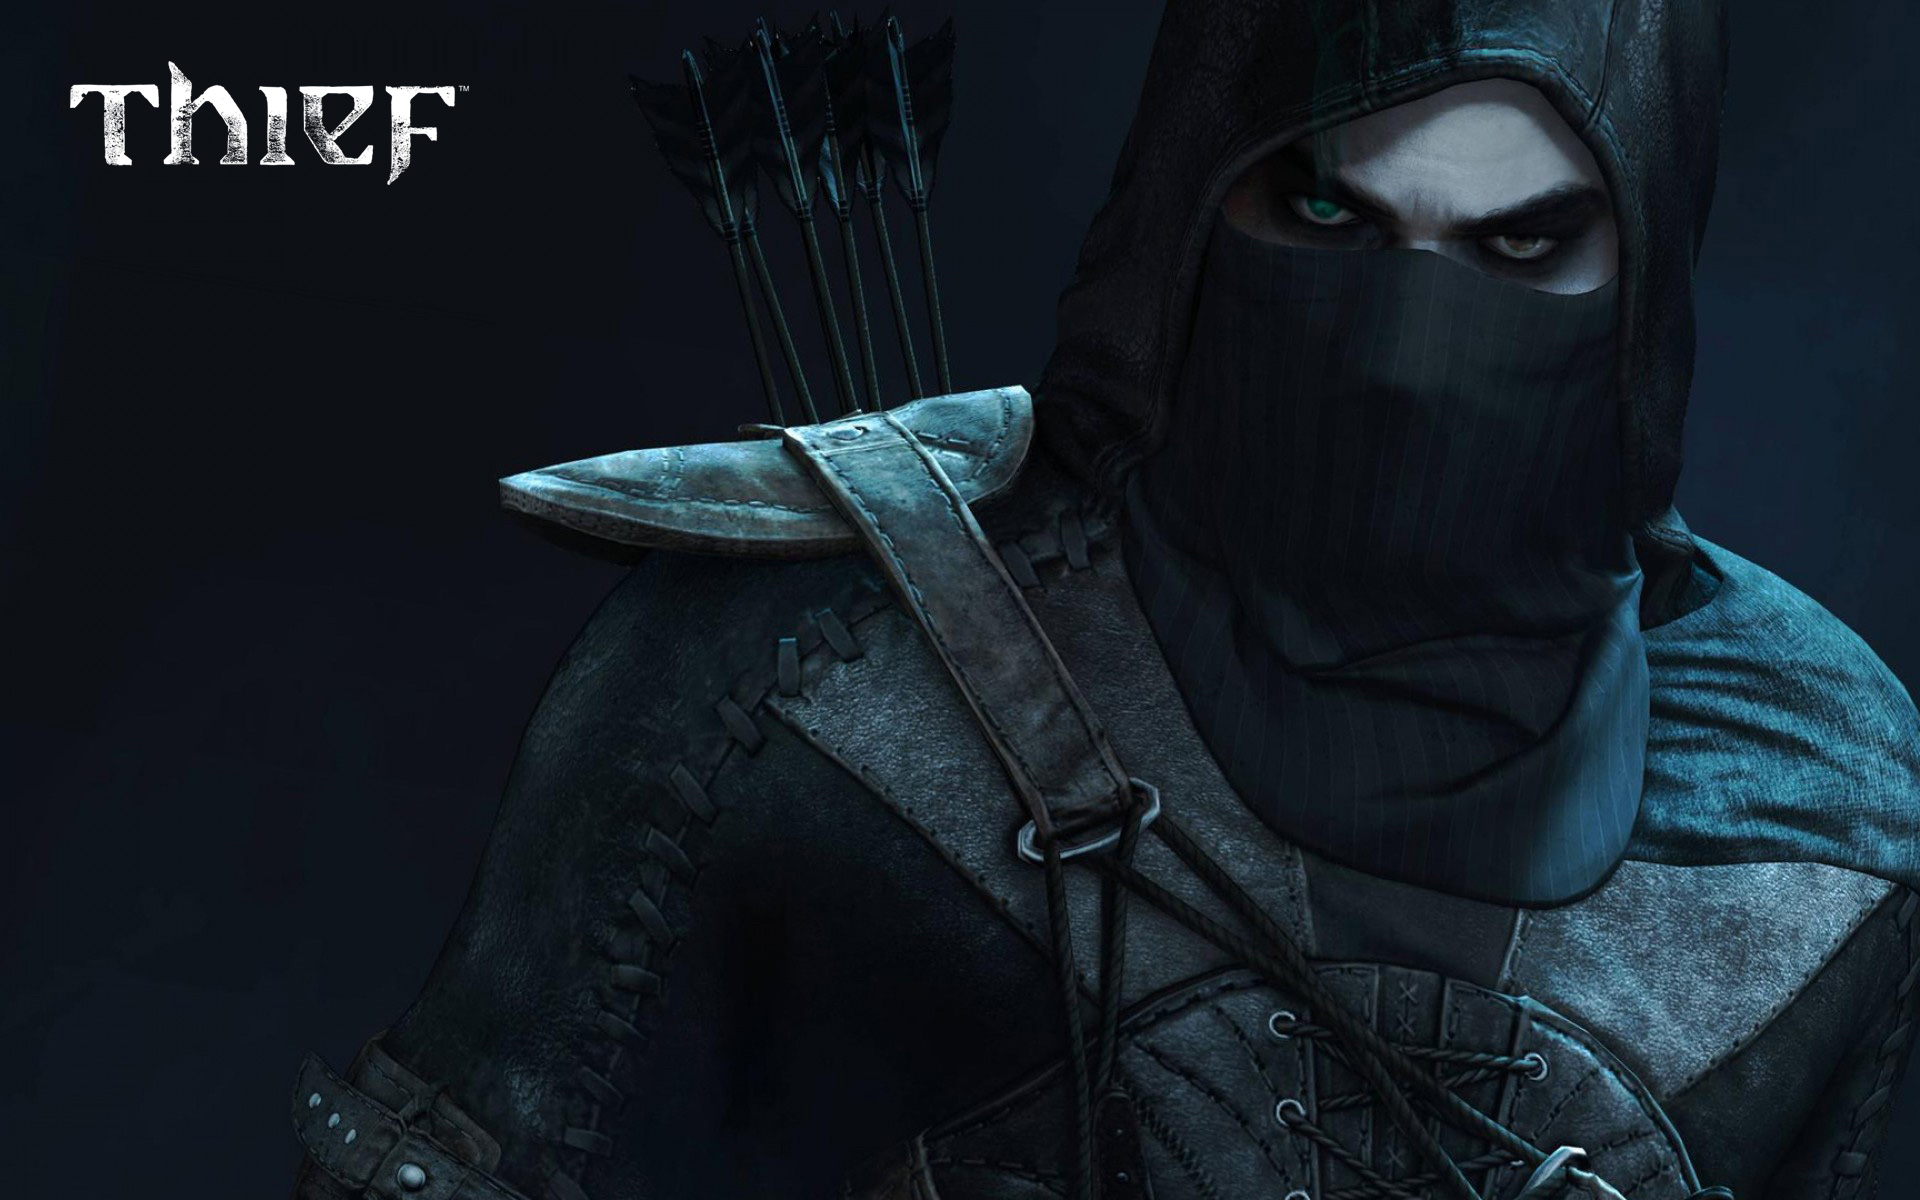 thief 2 wallpaper - photo #5